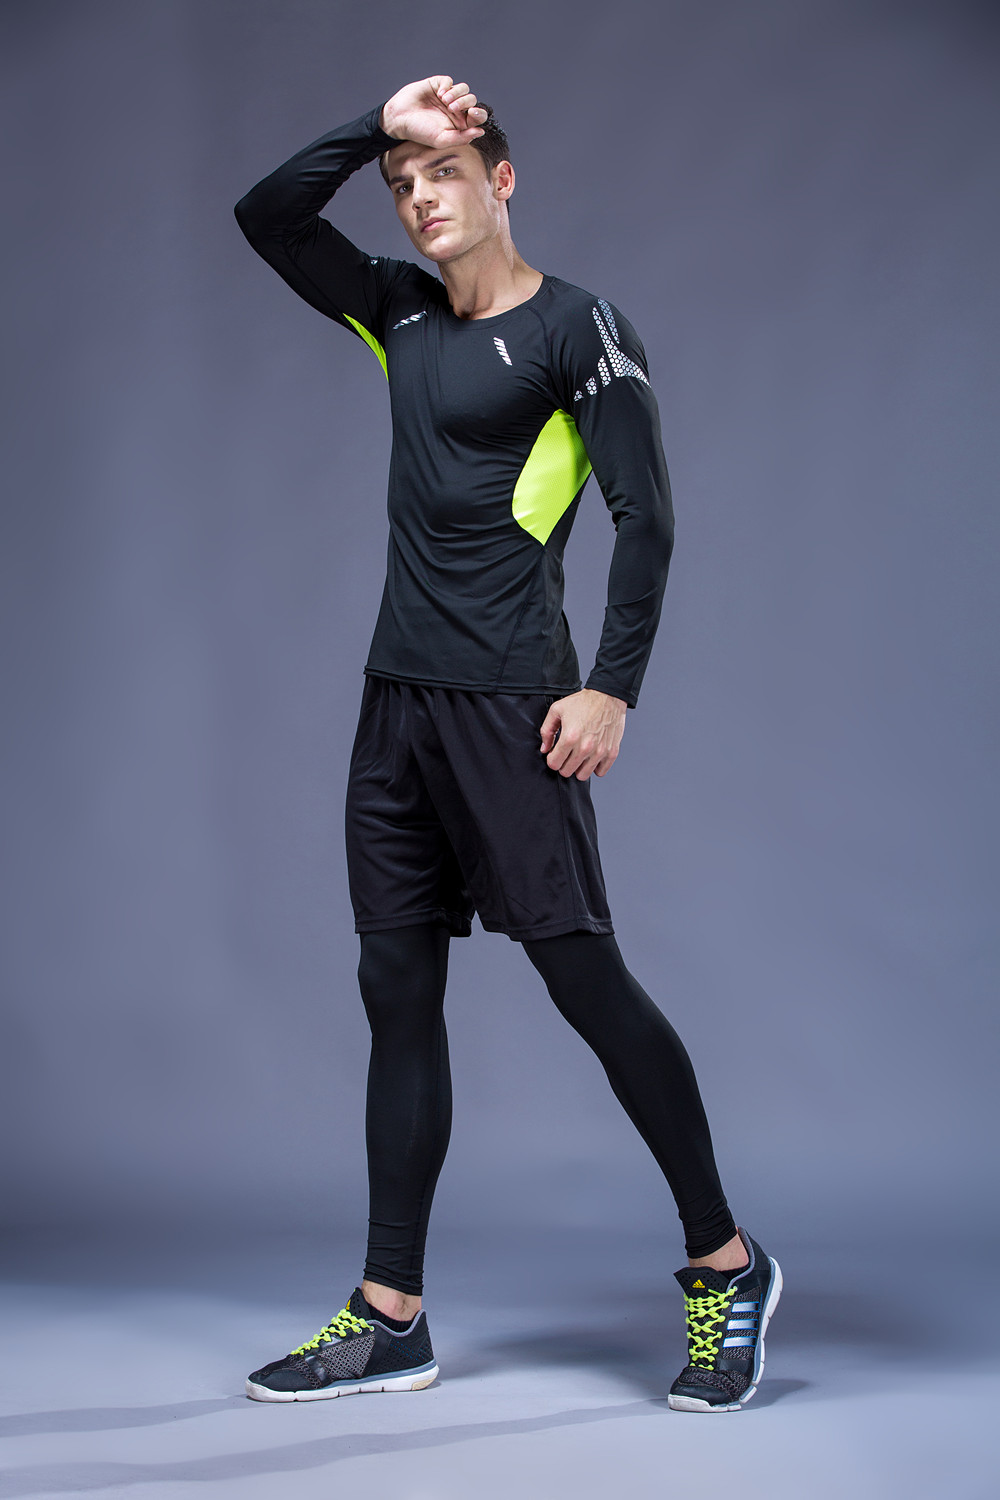 Foto1 from the right on the men 5 pcs compressions clothes for gym. Men's 5 pcs compression tracksuit sports